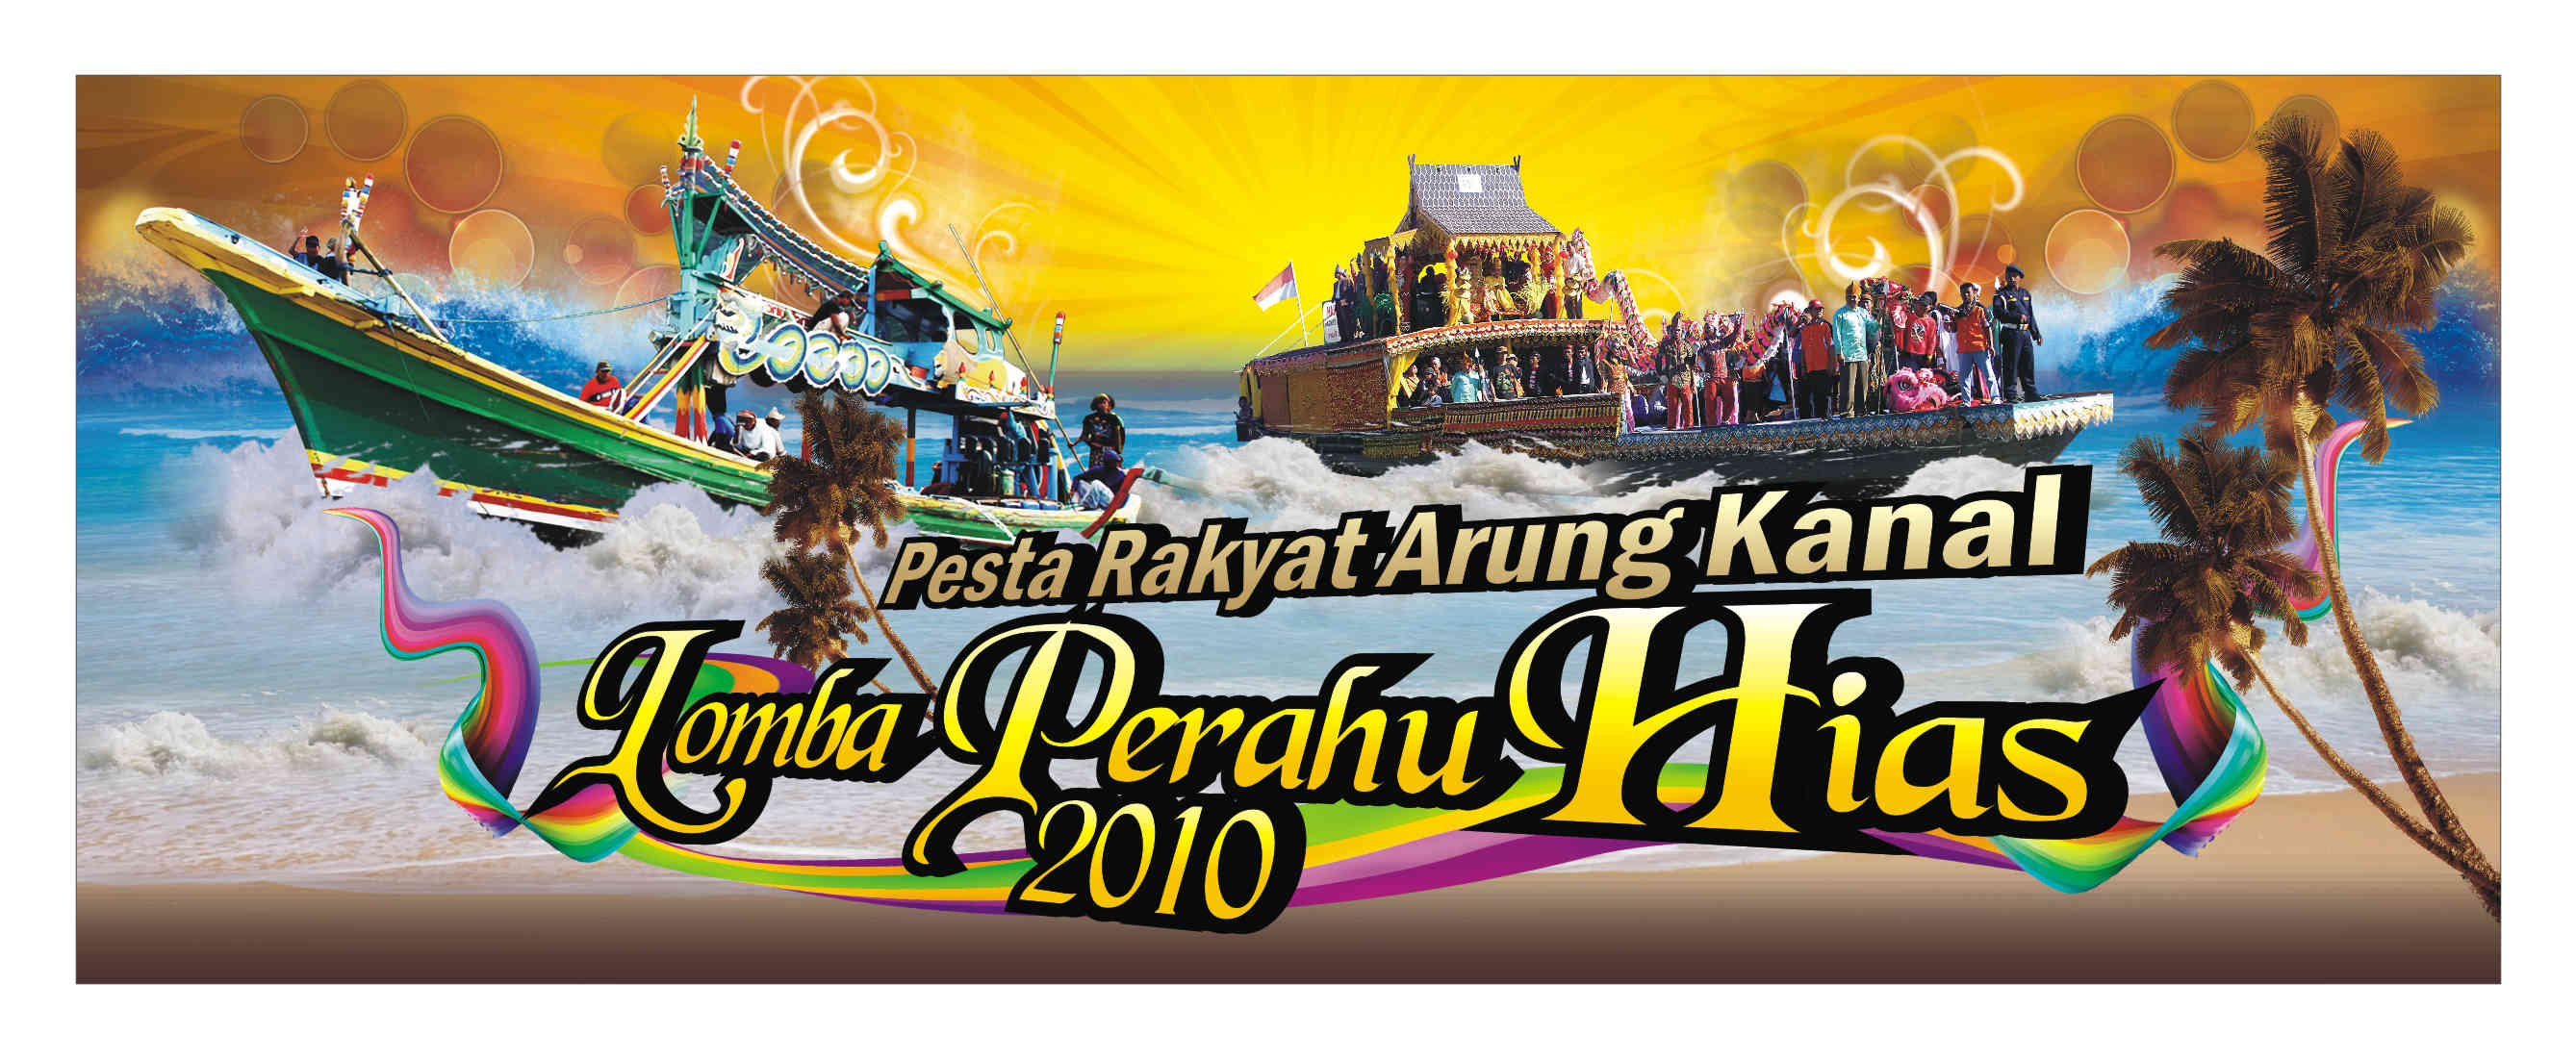 Banner LOMBA PERAHU HIAS by ignra